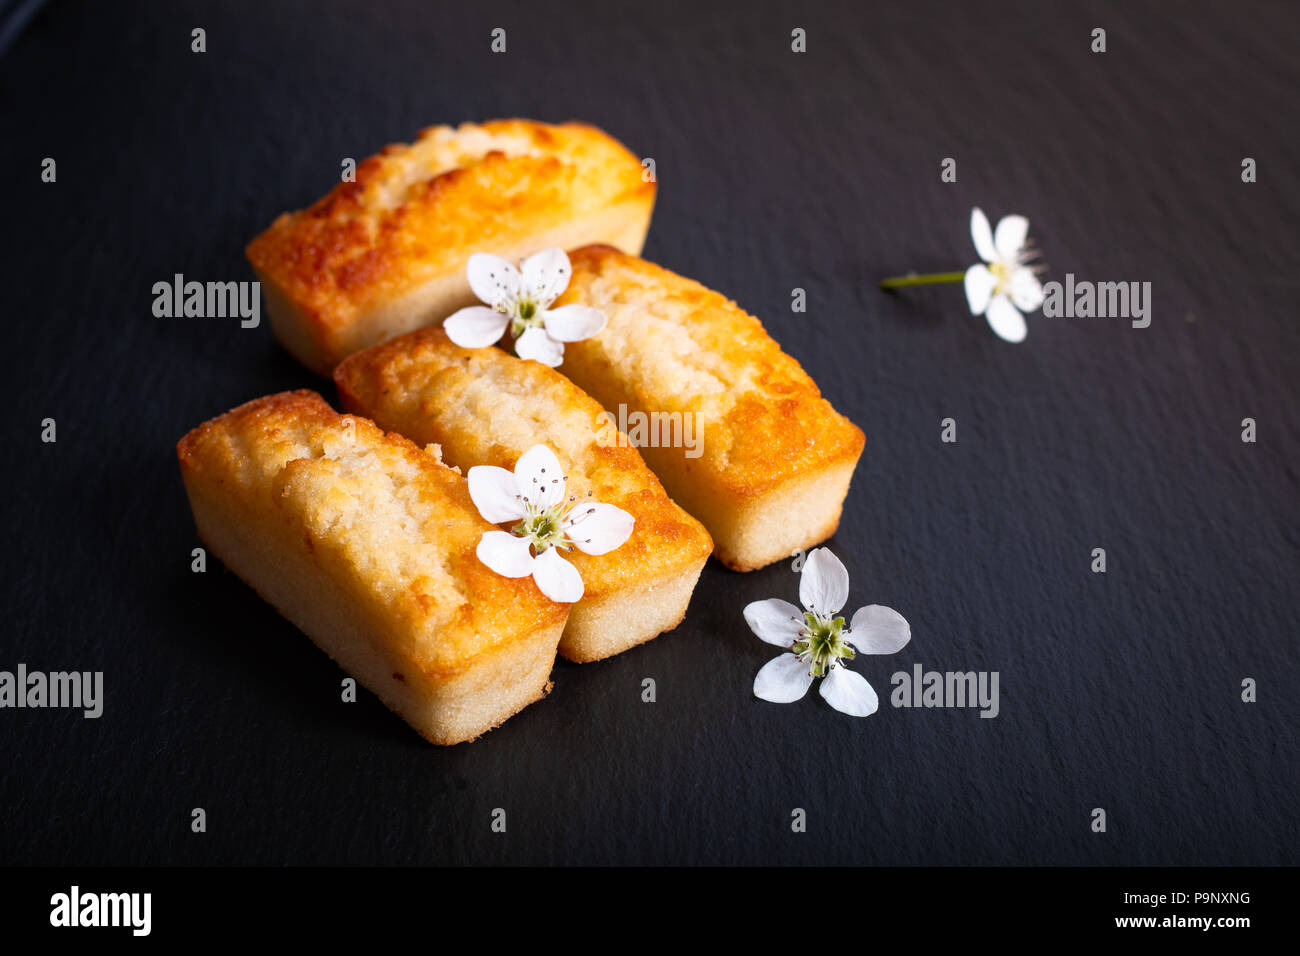 Food concept mini French almond cake financier on black slate stone with copy space - Stock Image